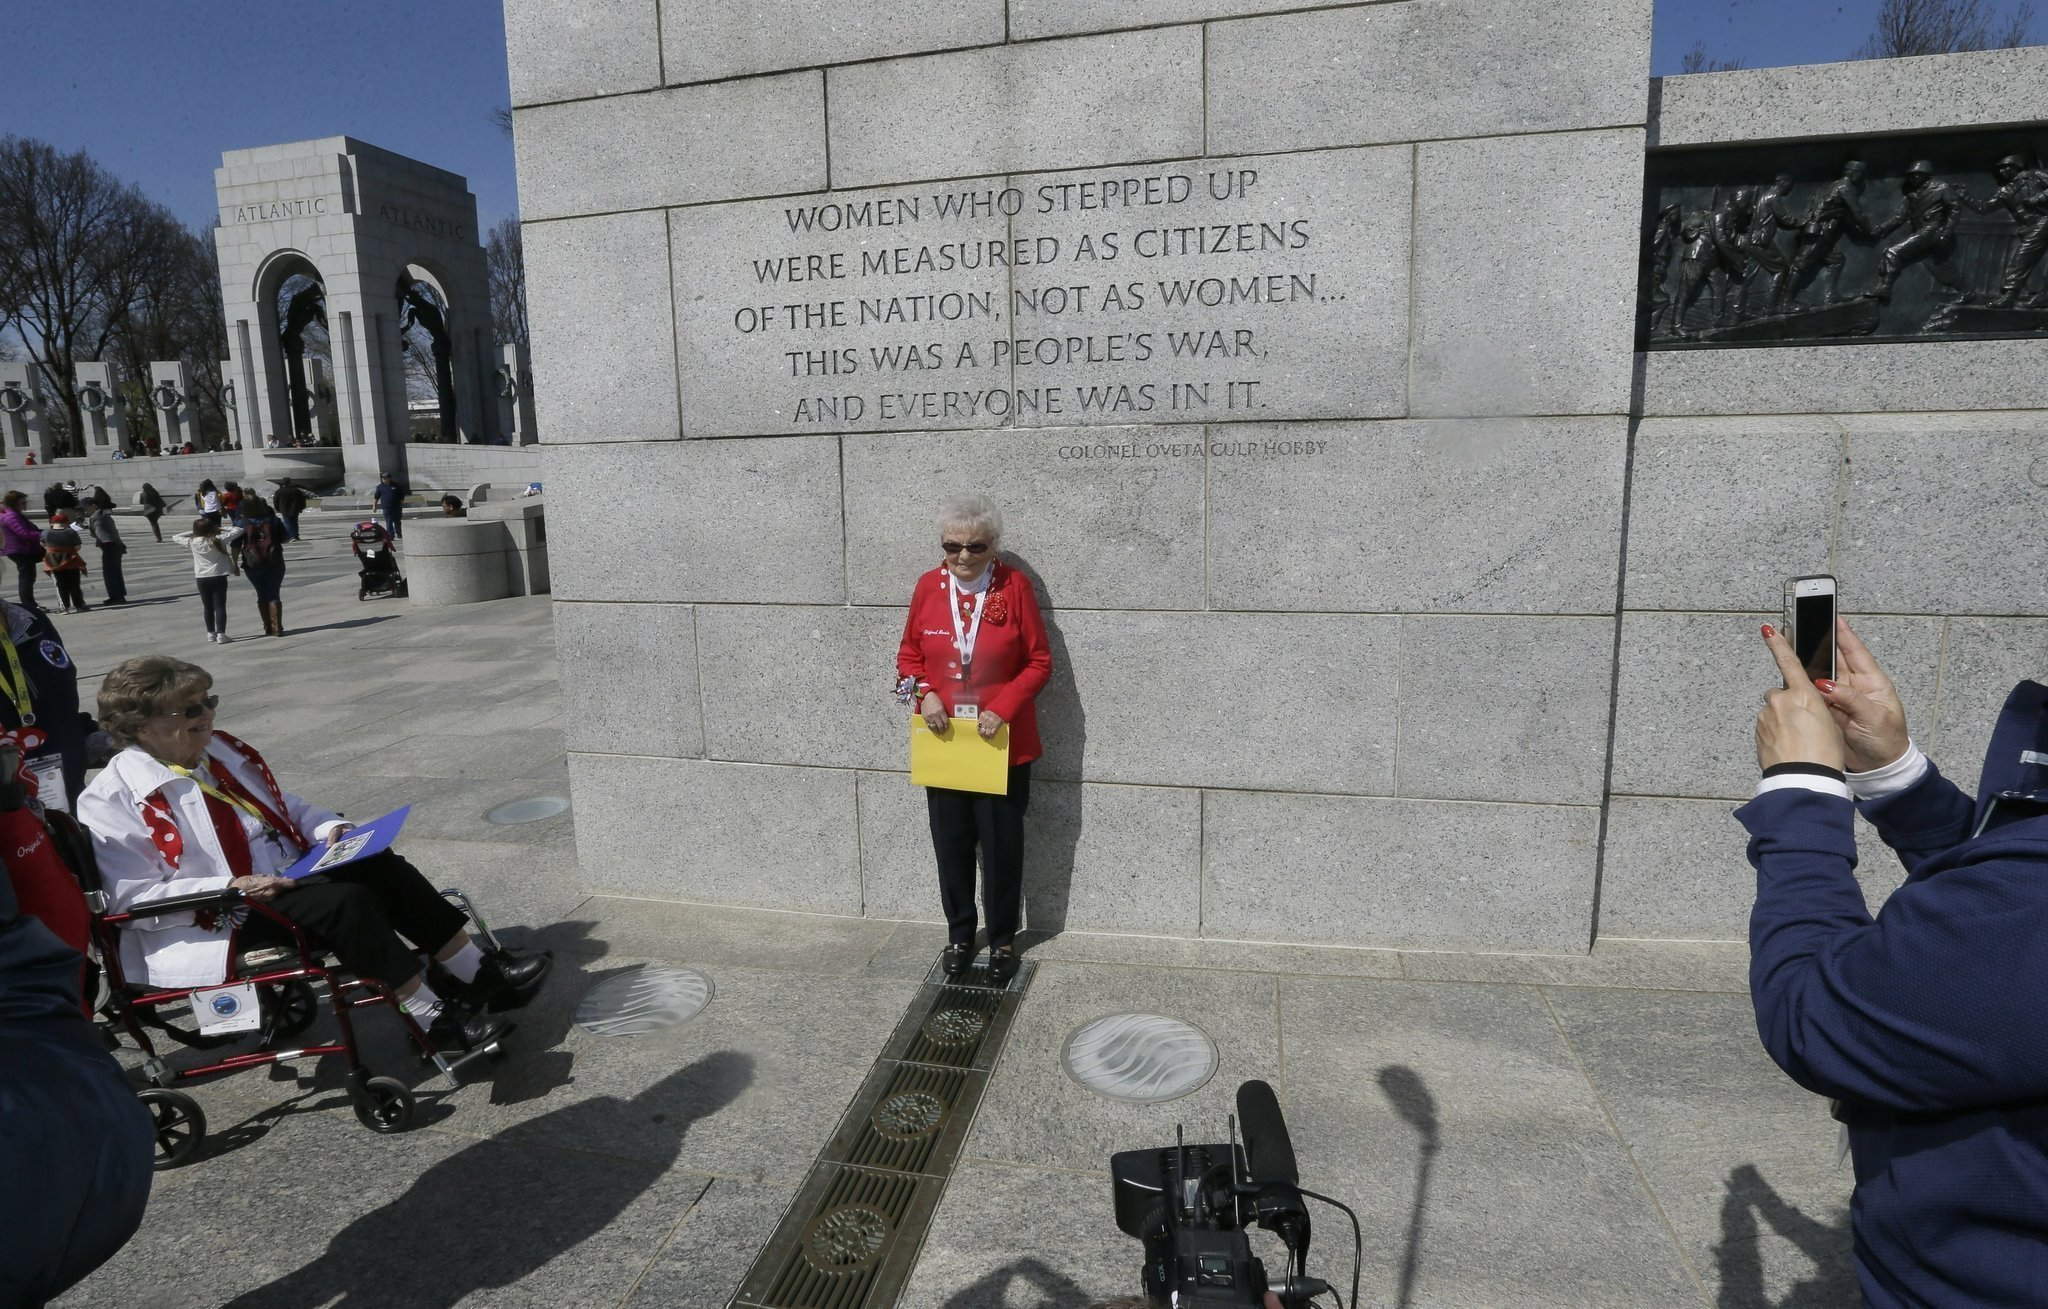 Rosie The Riveters Honored With Visit To Washington The San Diego